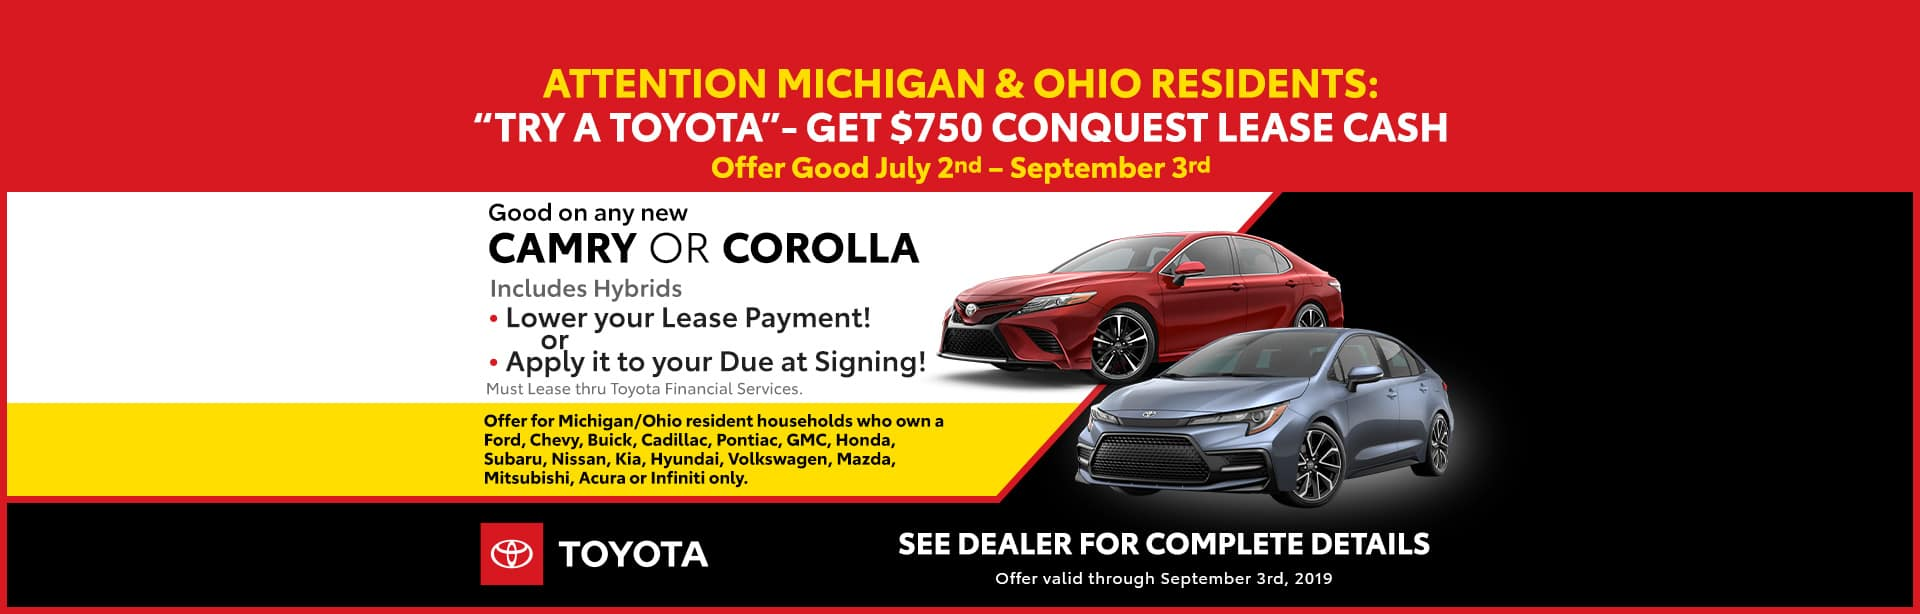 Toyota Dealership Dearborn MI | Near Detroit & Taylor | LaFontaine